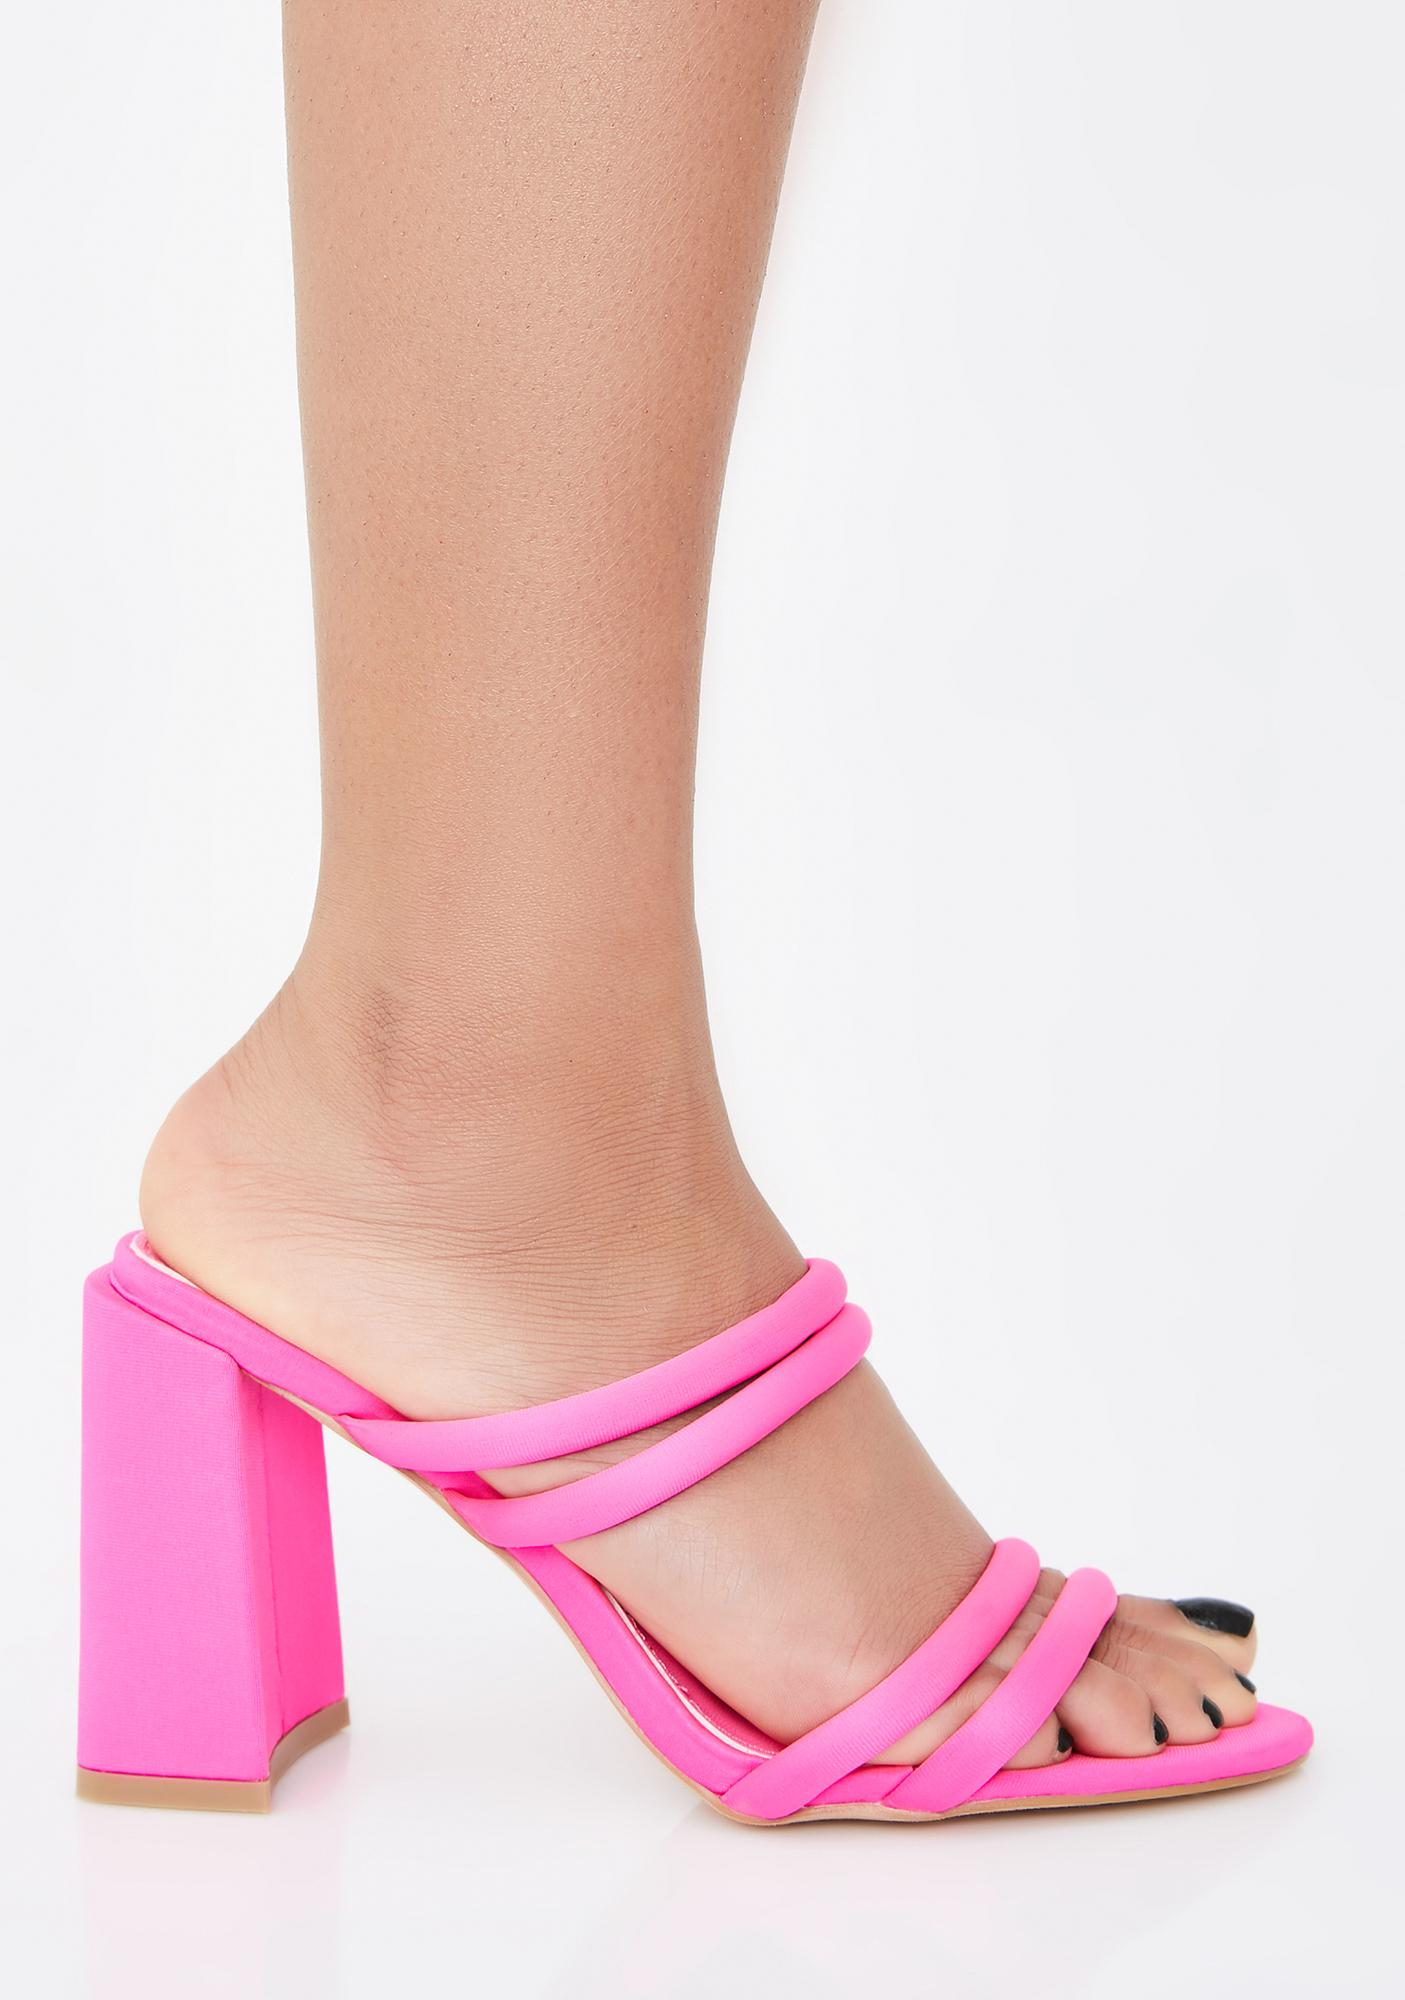 Fame Addict Strappy Mules